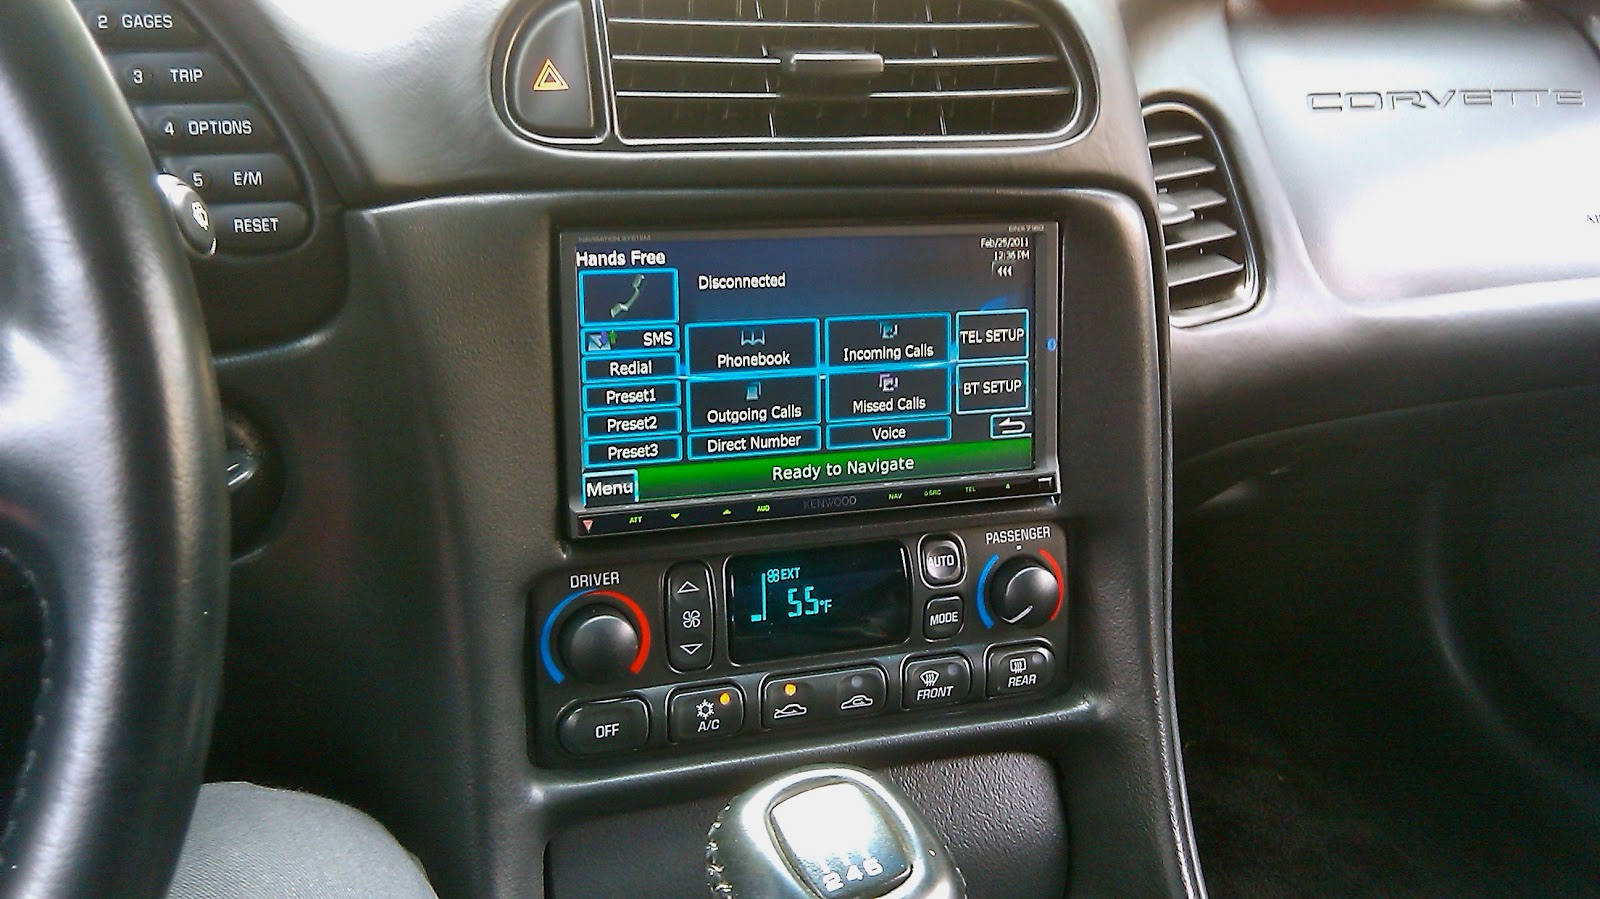 2000 Corvette Radio Wiring Great Installation Of Diagram Silverado Harness Car Audio Tips Tricks And How To S 1997 2004 C5 Double Rh Caraudiotips Blogspot Com Oil Type Radi